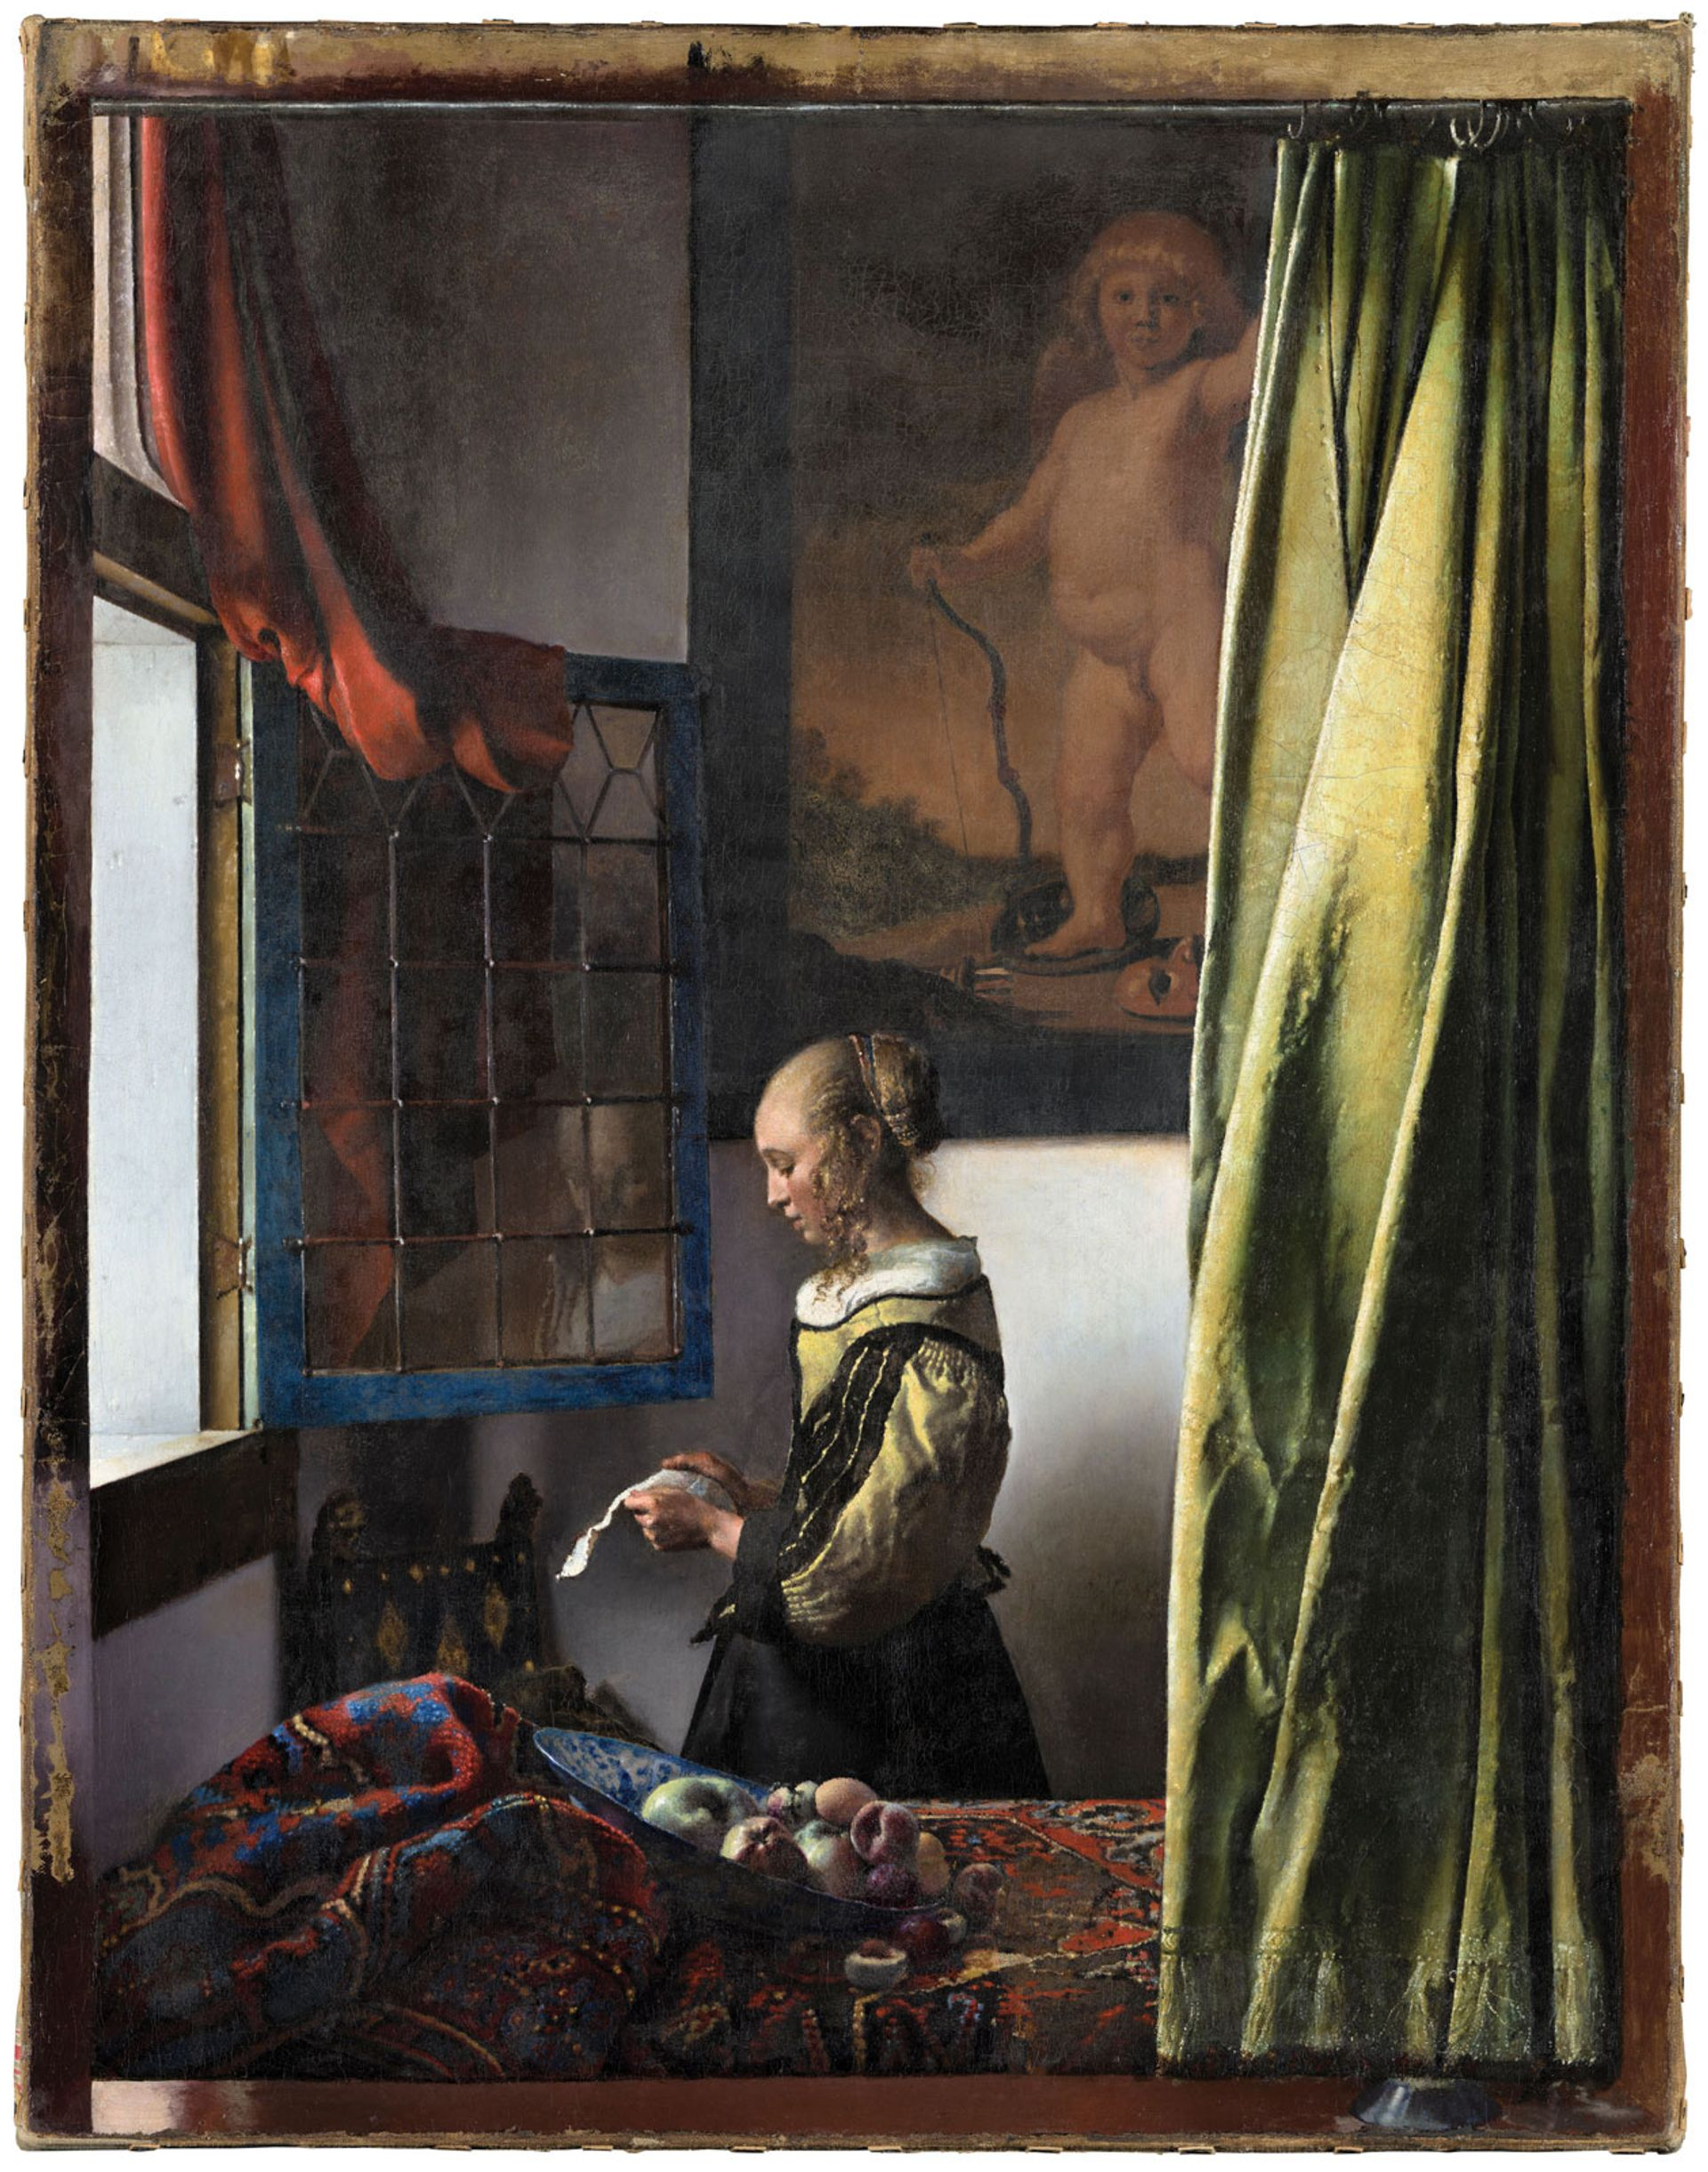 The newly restored Girl Reading a Letter at an Open Window (around 1657-59) by Johannes Vermeer © Gemäldegalerie Alte Meister, SKD, Photo: Wolfgang Kreische